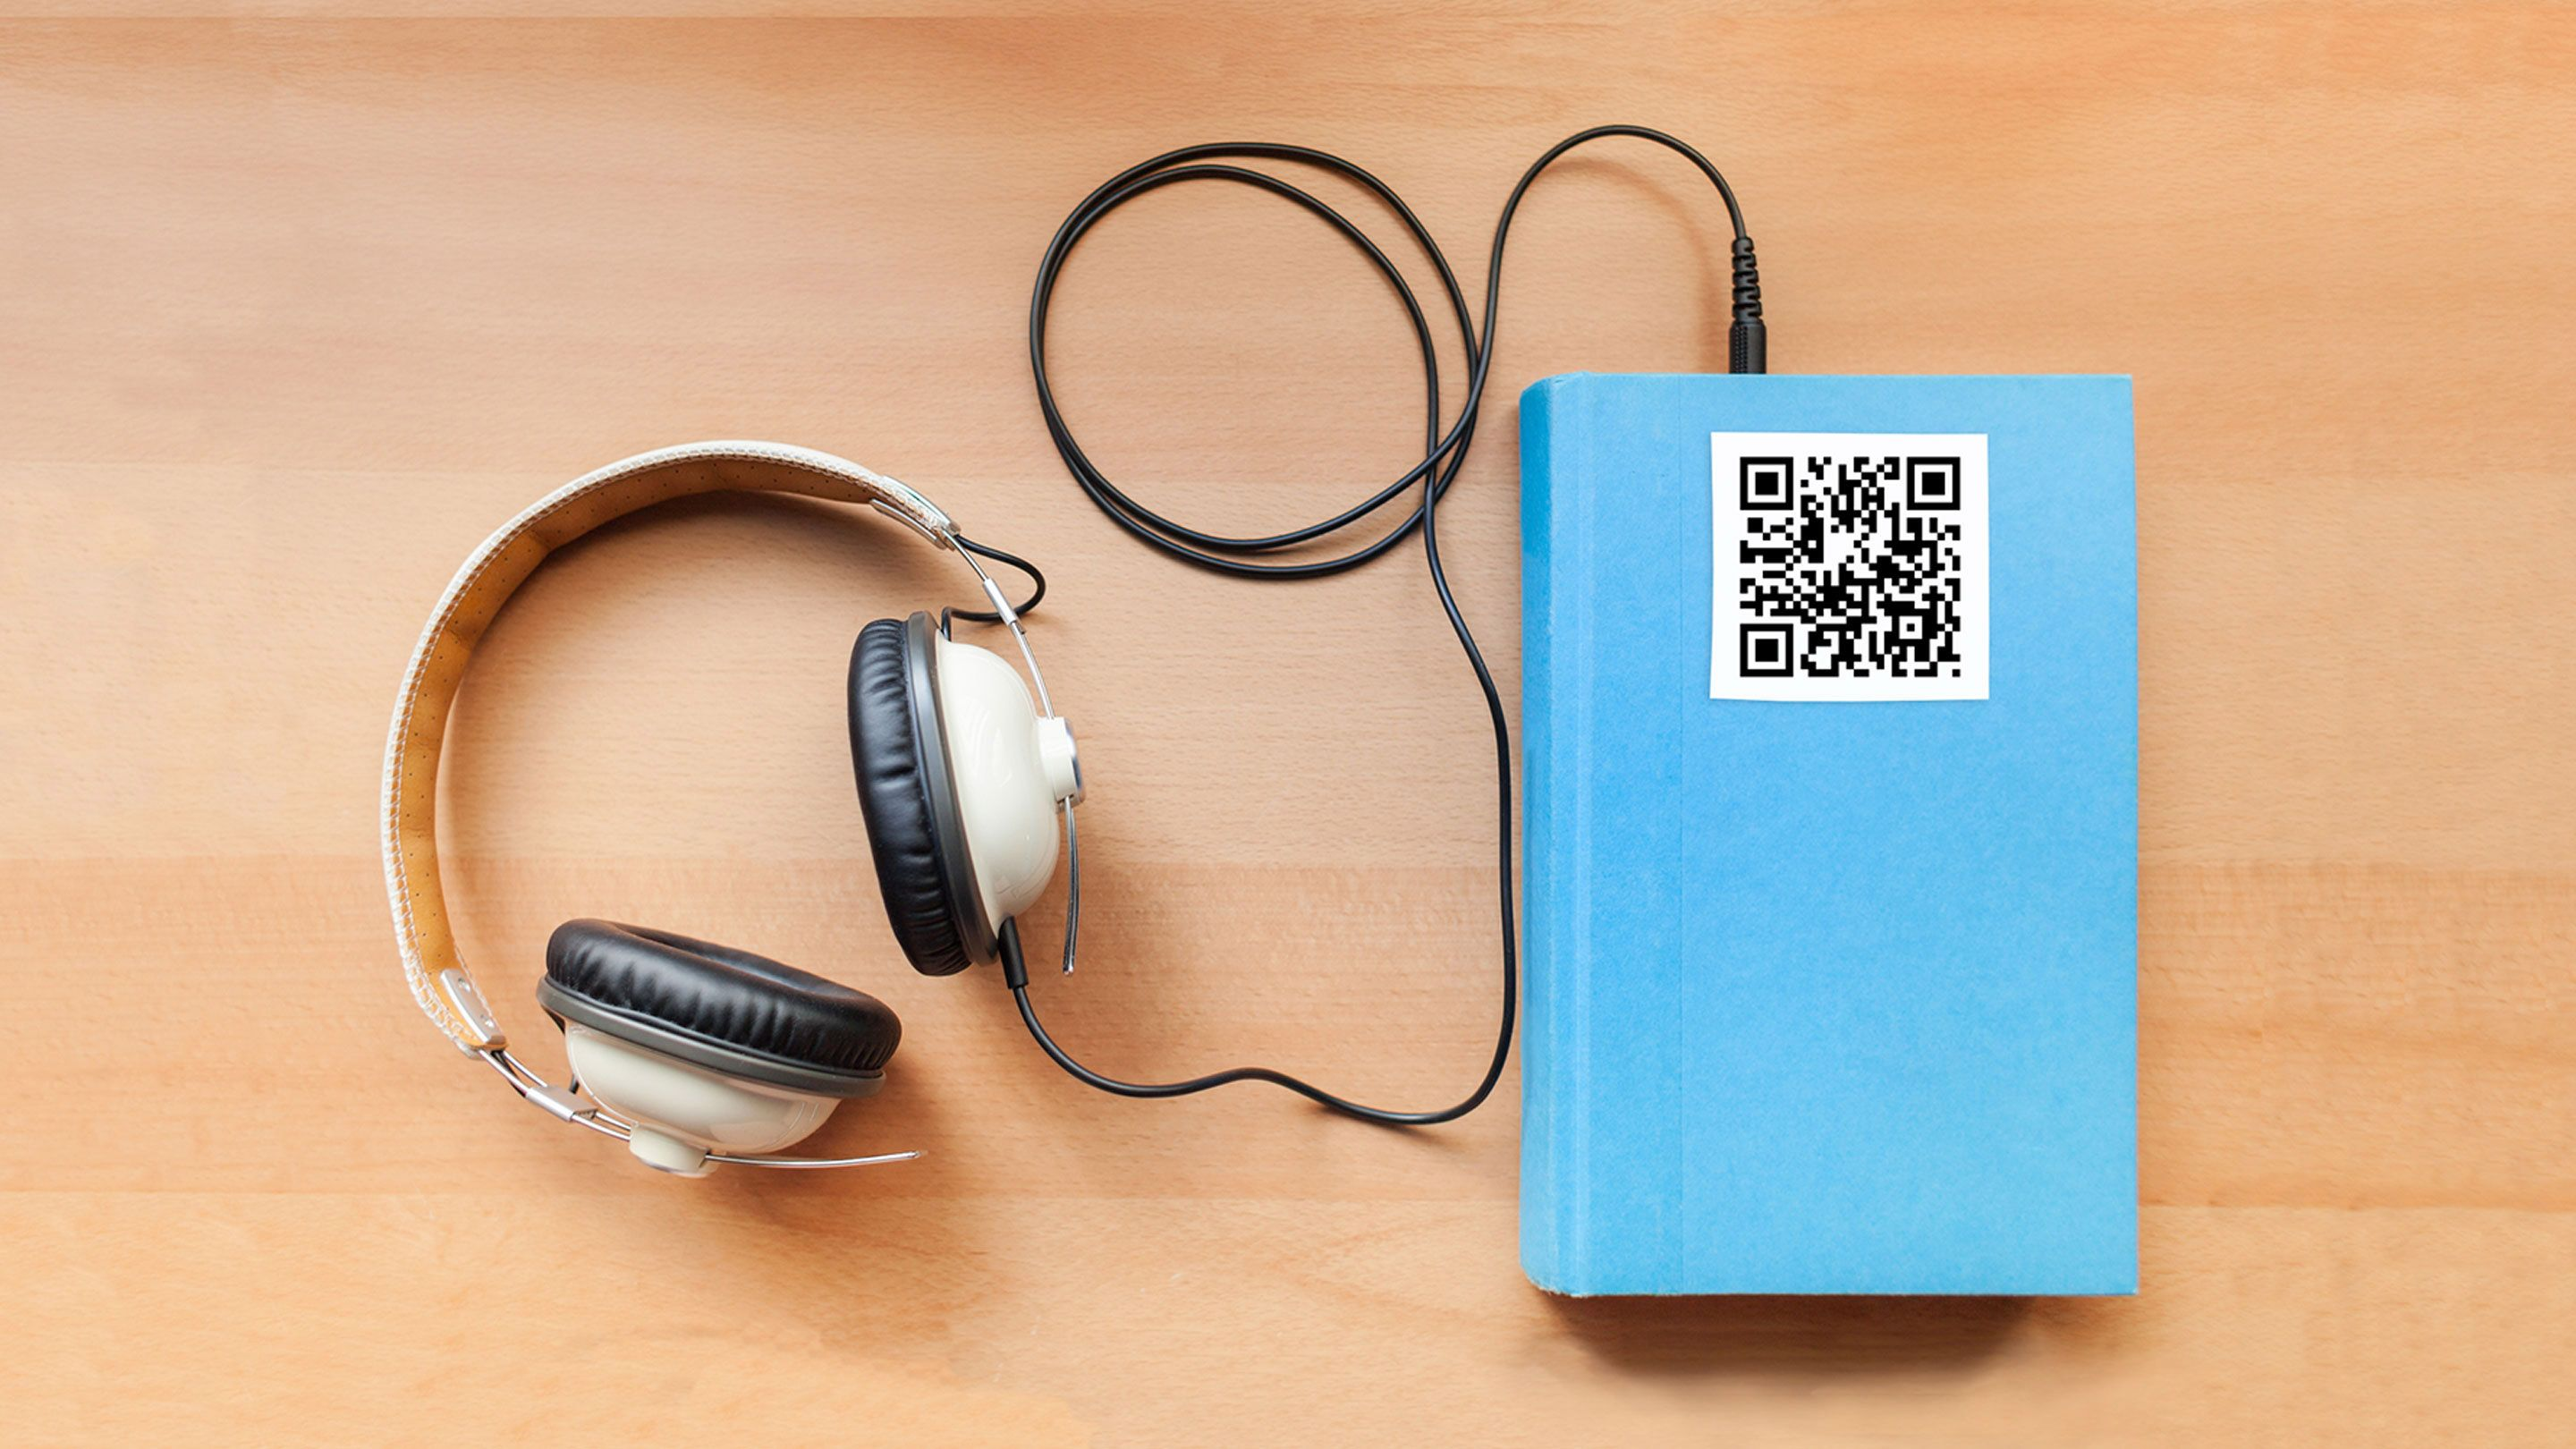 Image of a book with a pair of headphones attached